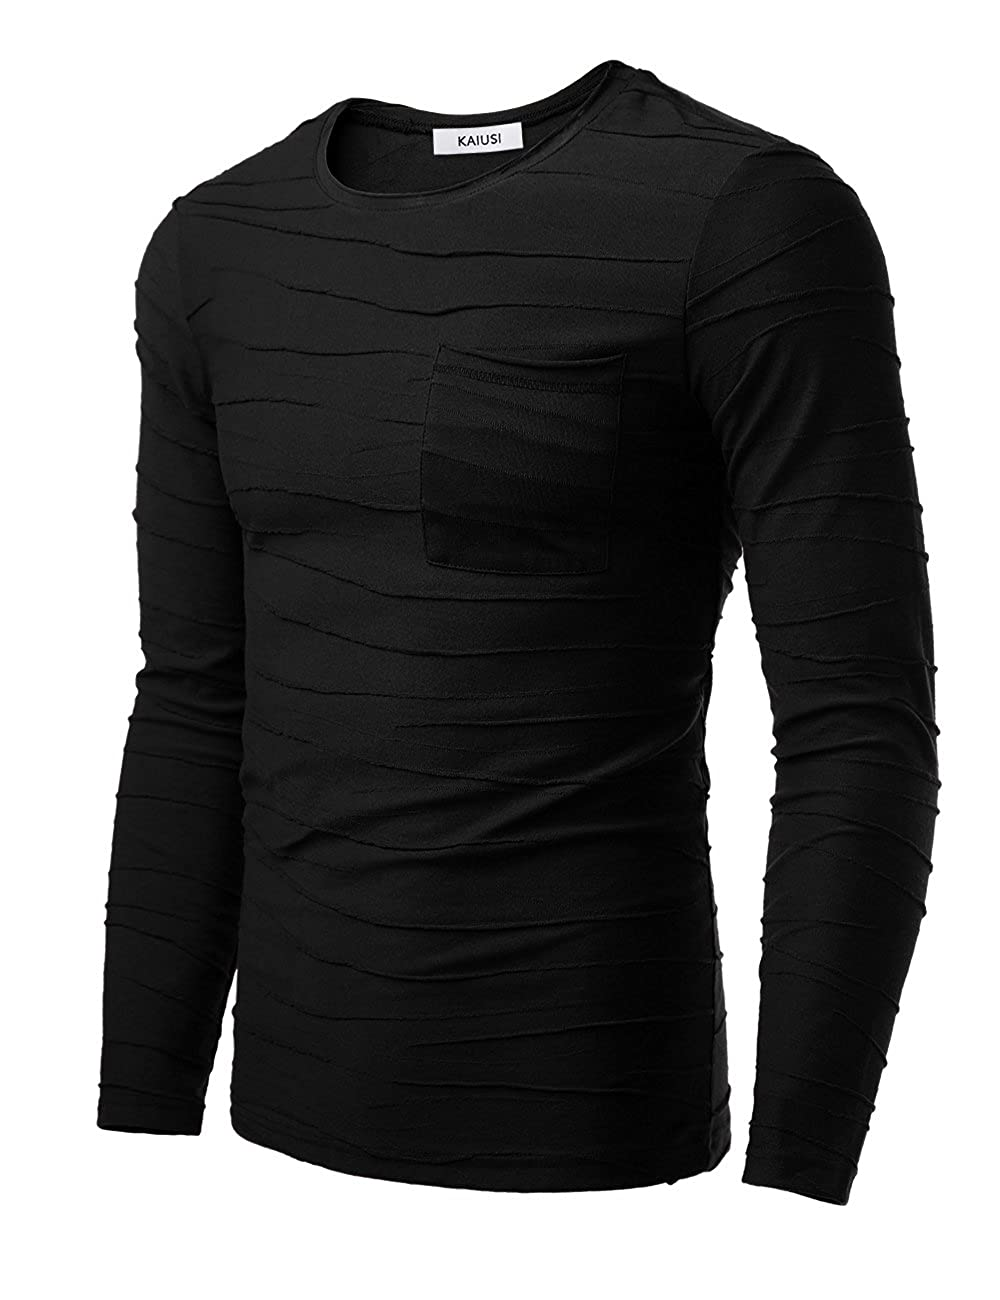 KAIUSI Men's Pleated Ruched Pocket Long Sleeve T-Shirt Tops: Amazon.co.uk:  Clothing